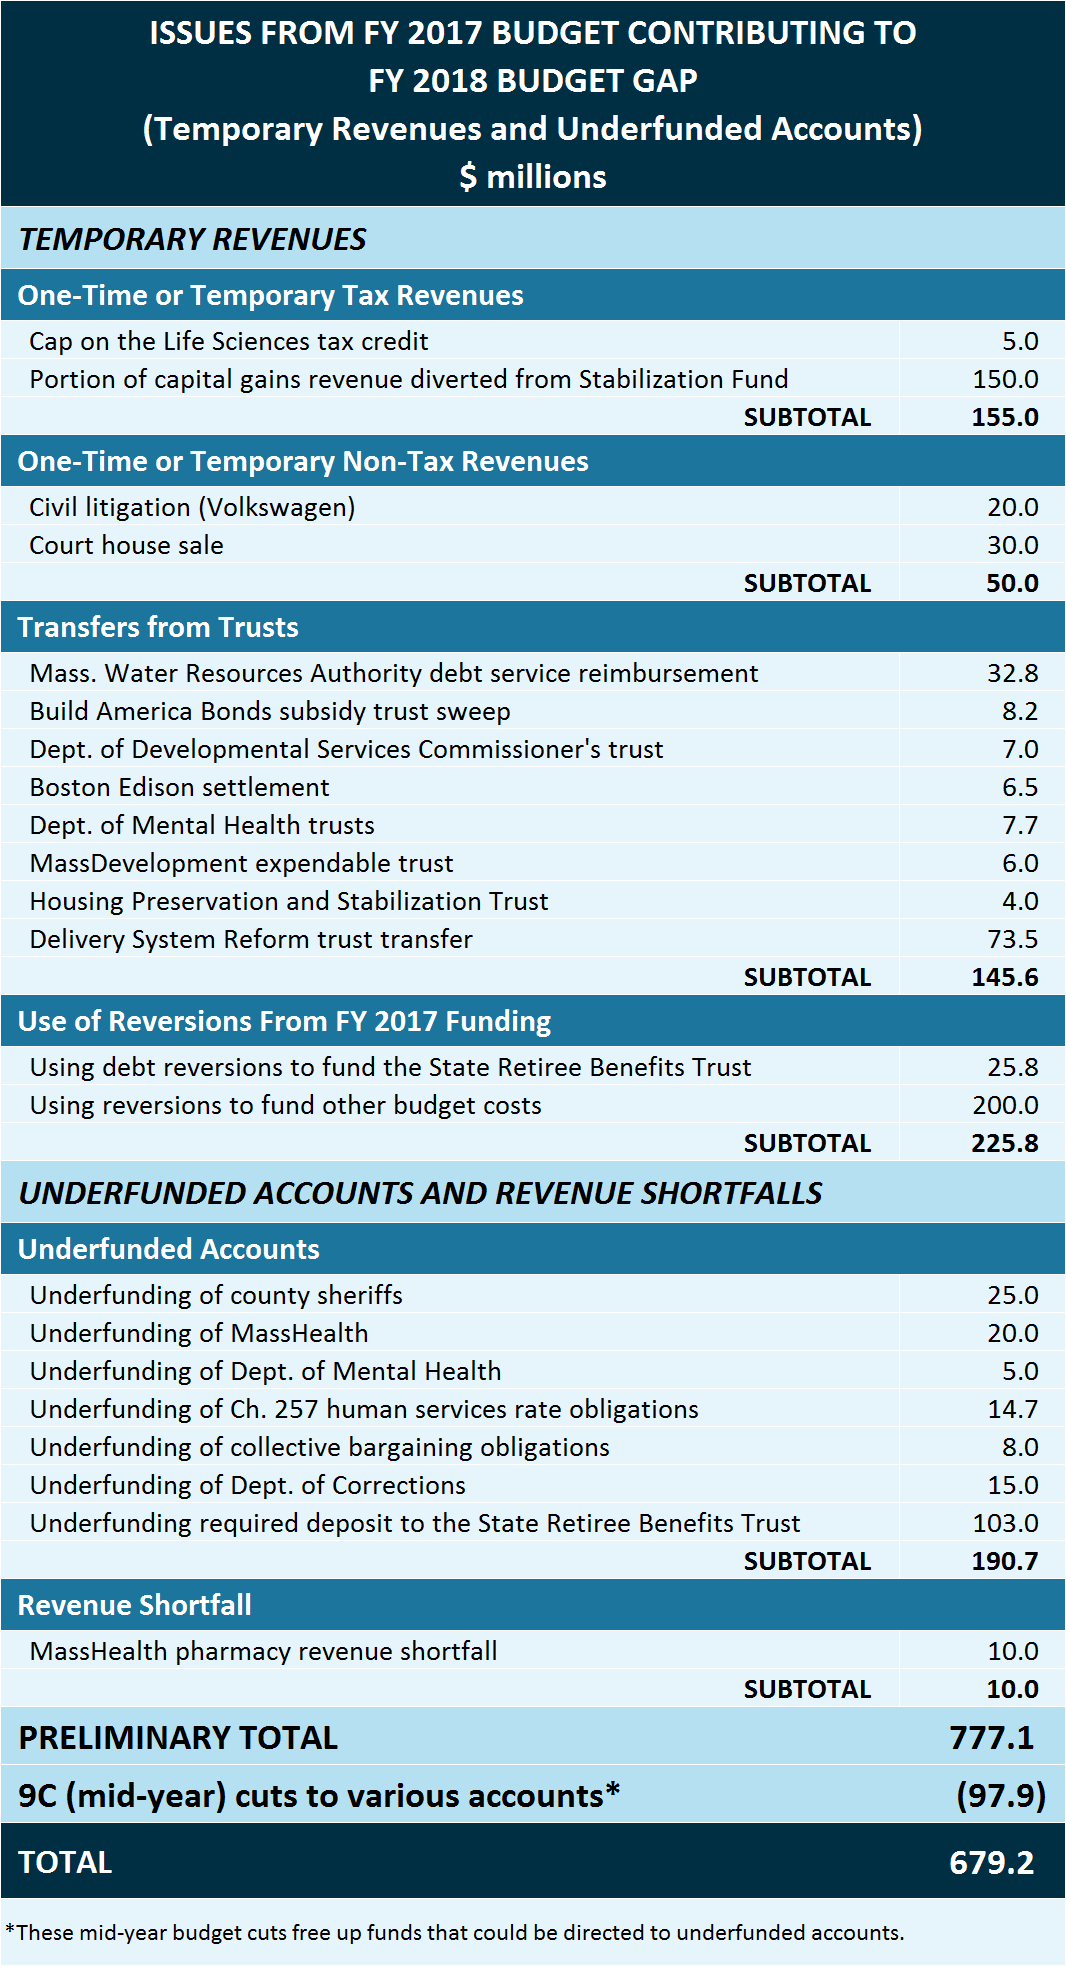 A Preview of the Fiscal Year 2018 Budget Challenges - Table 1